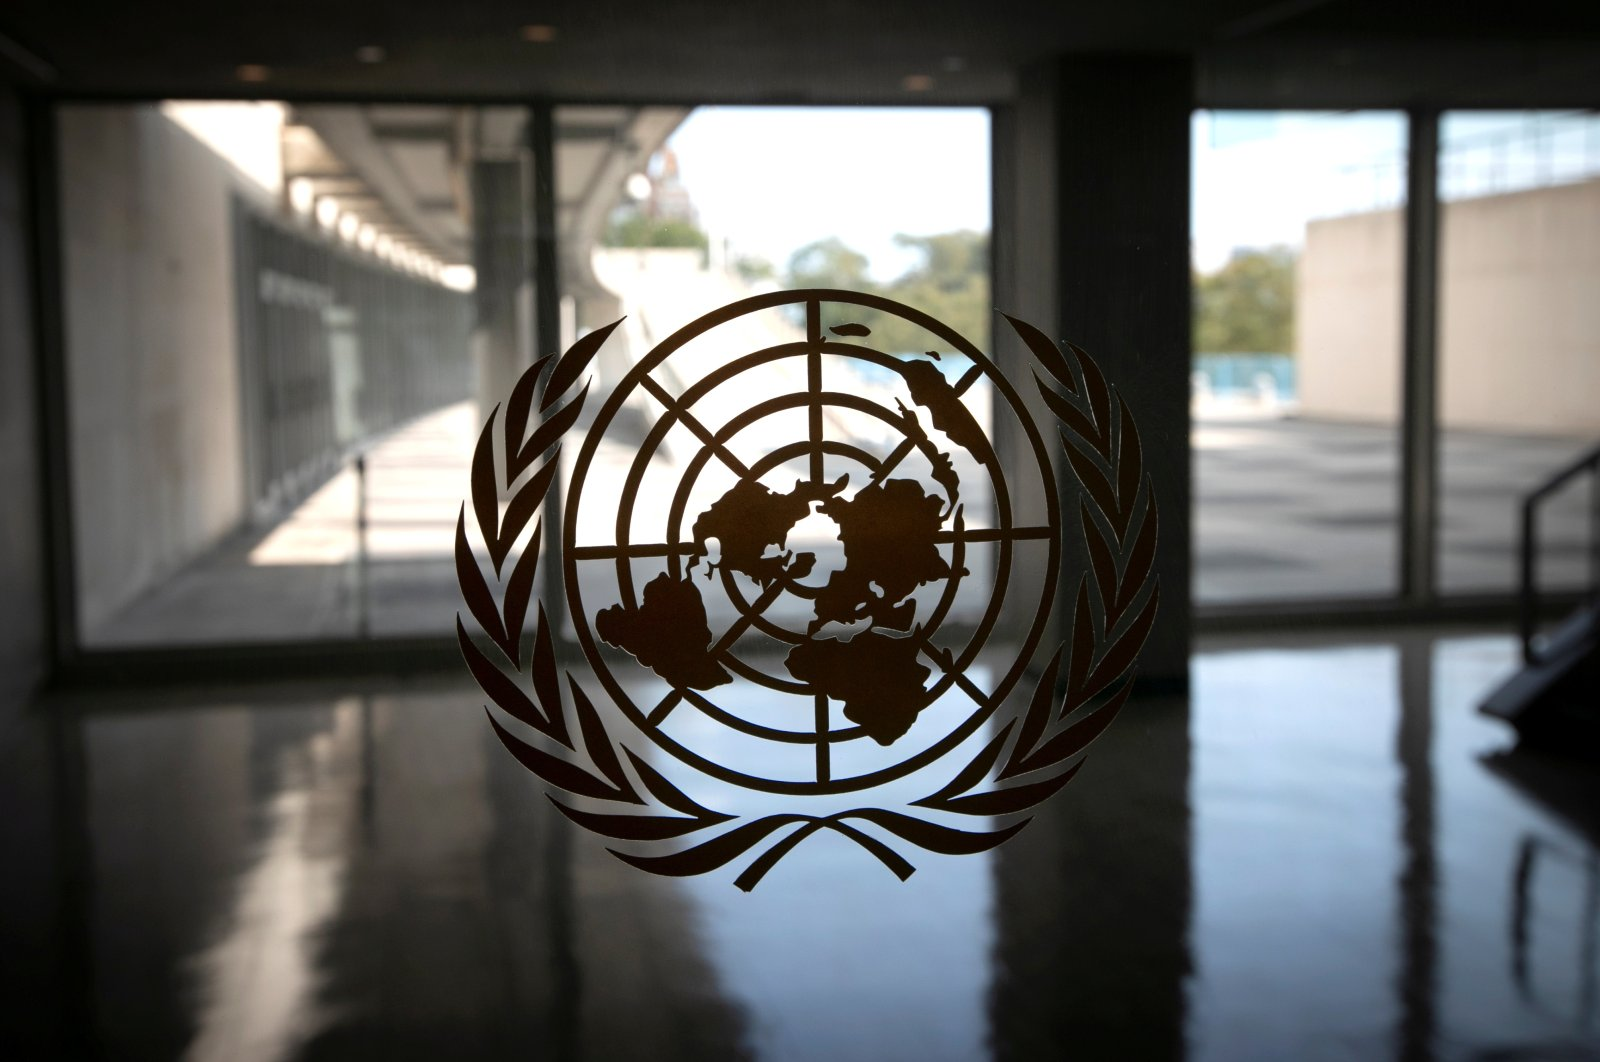 The United Nations logo is seen on a window in an empty hallway at U.N. headquarters in New York, U.S., Sept. 21, 2020. (REUTERS Photo)